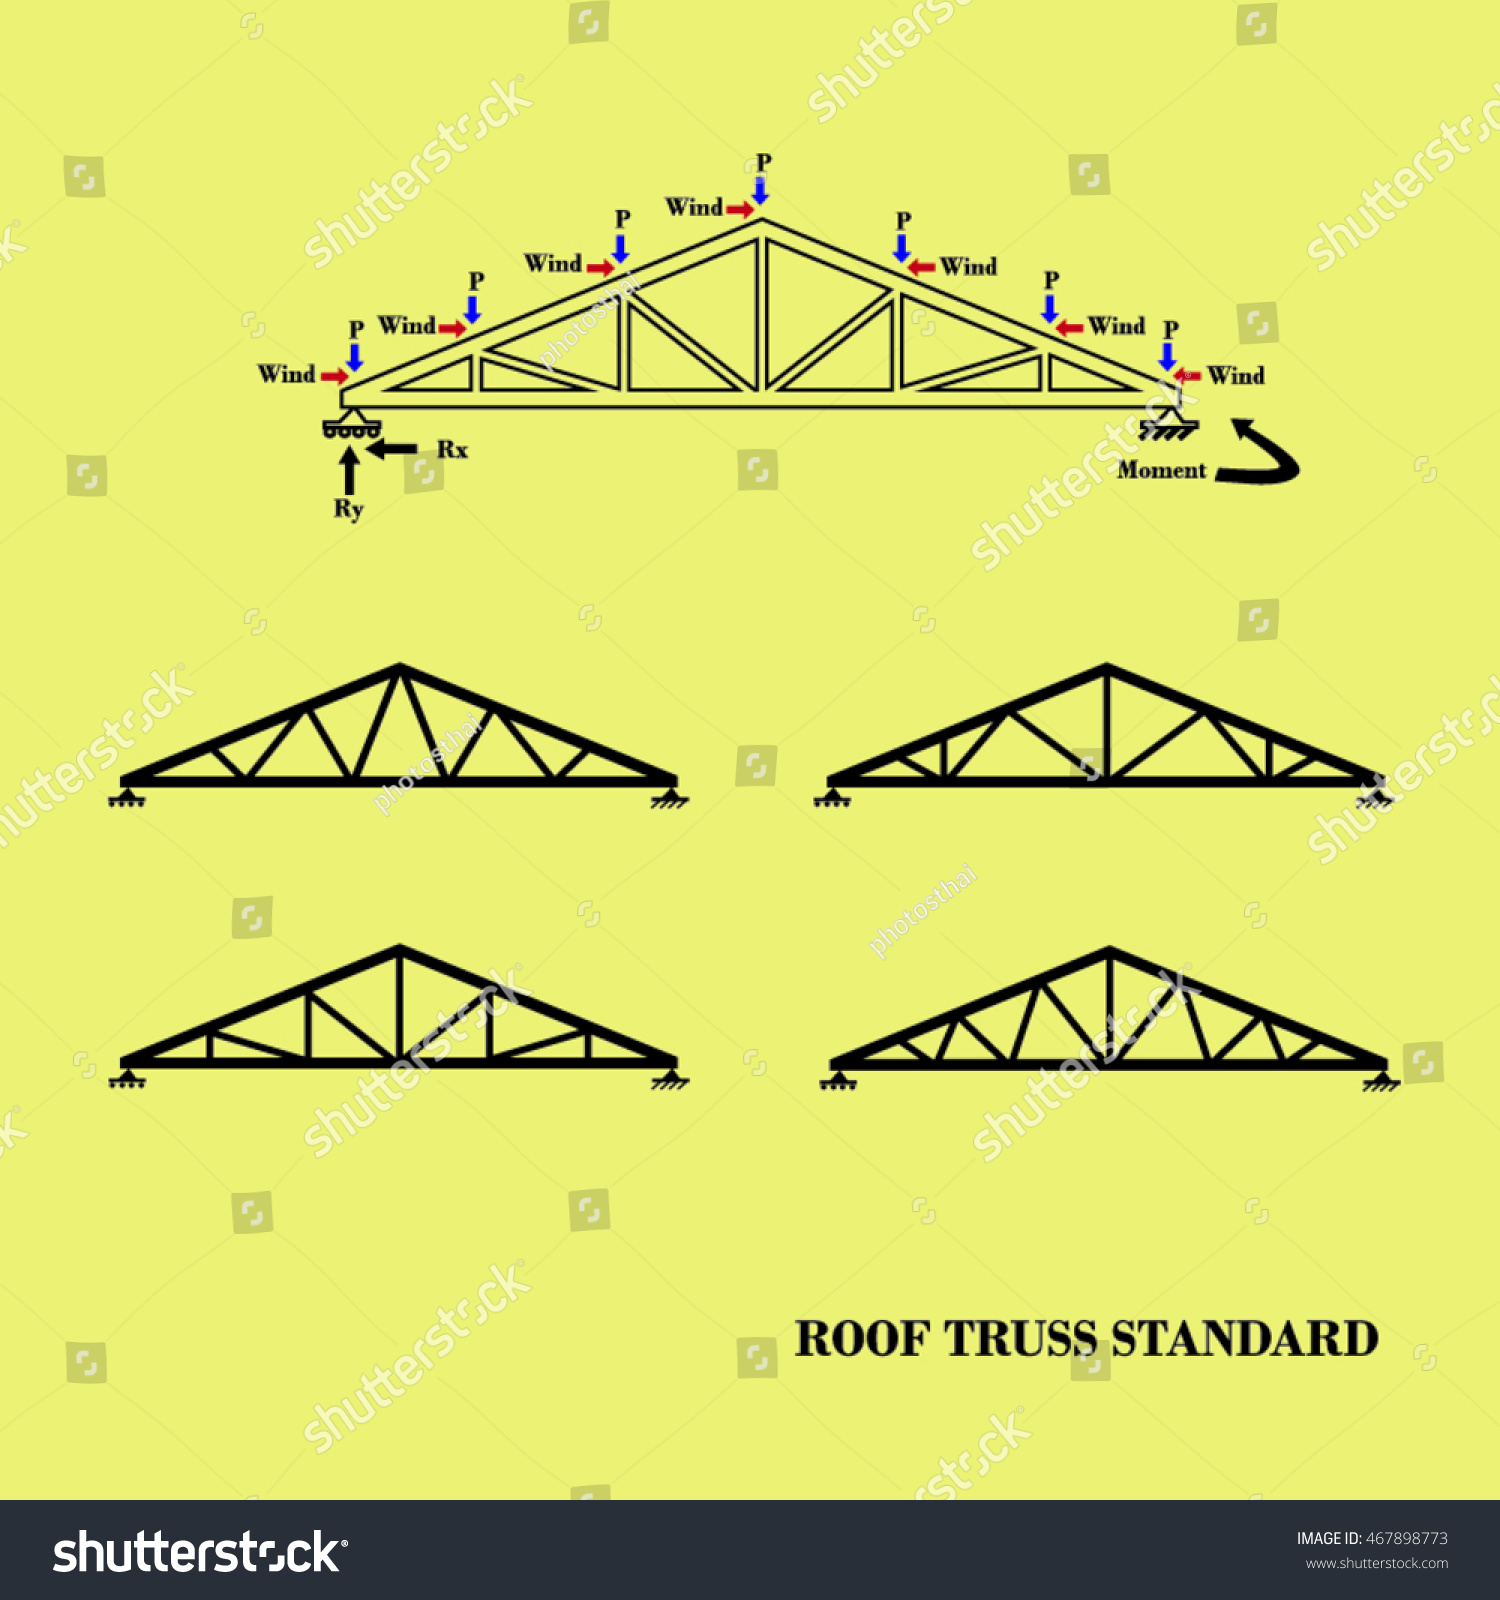 Roof truss illustration stock vector 467898773 shutterstock for Roof truss sign